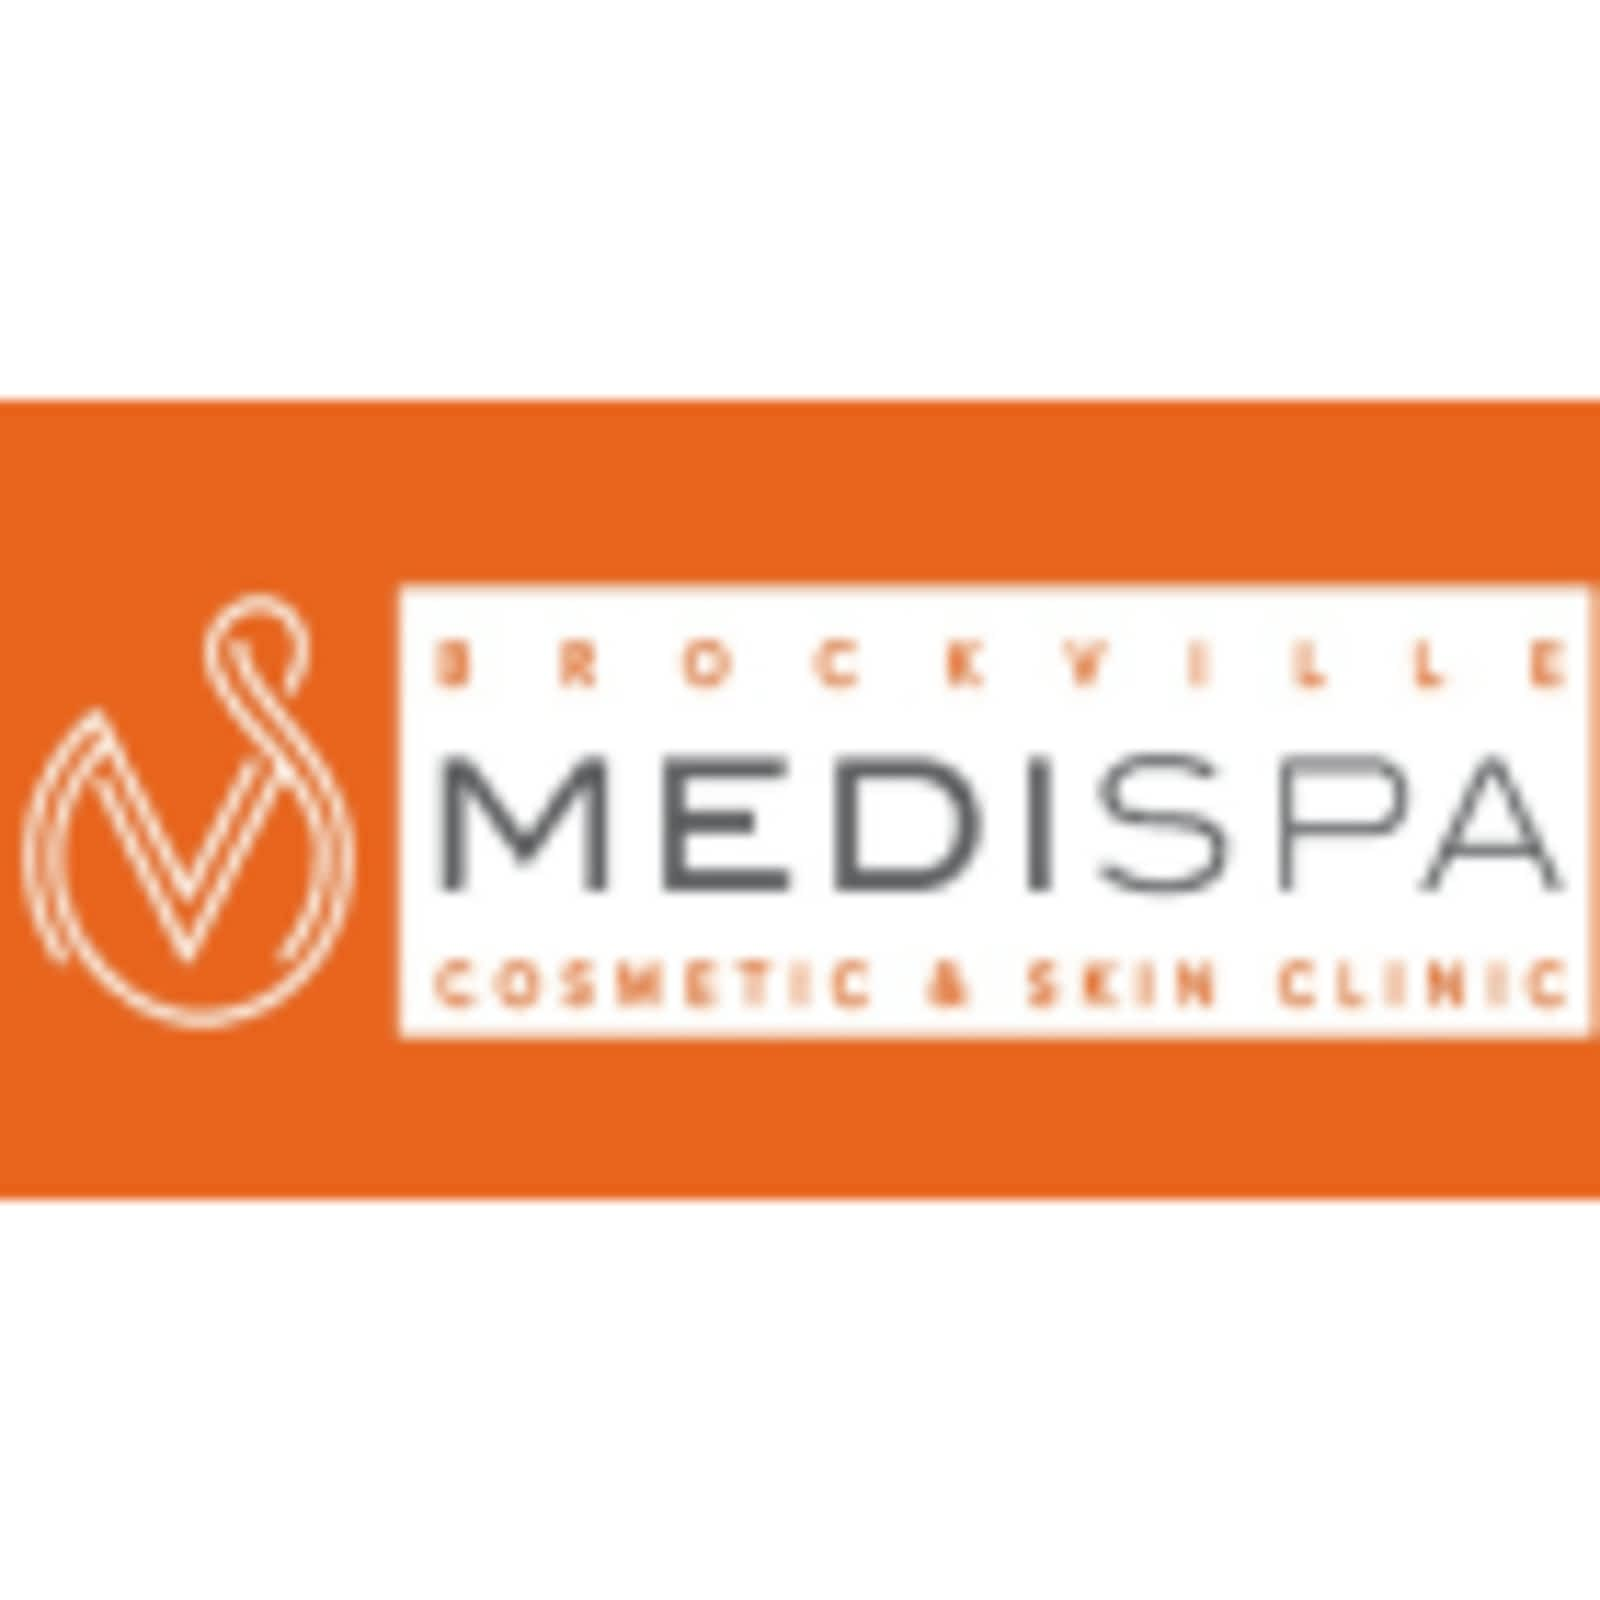 Brockville MediSpa and Cosmetic Skin Clinic - Opening Hours